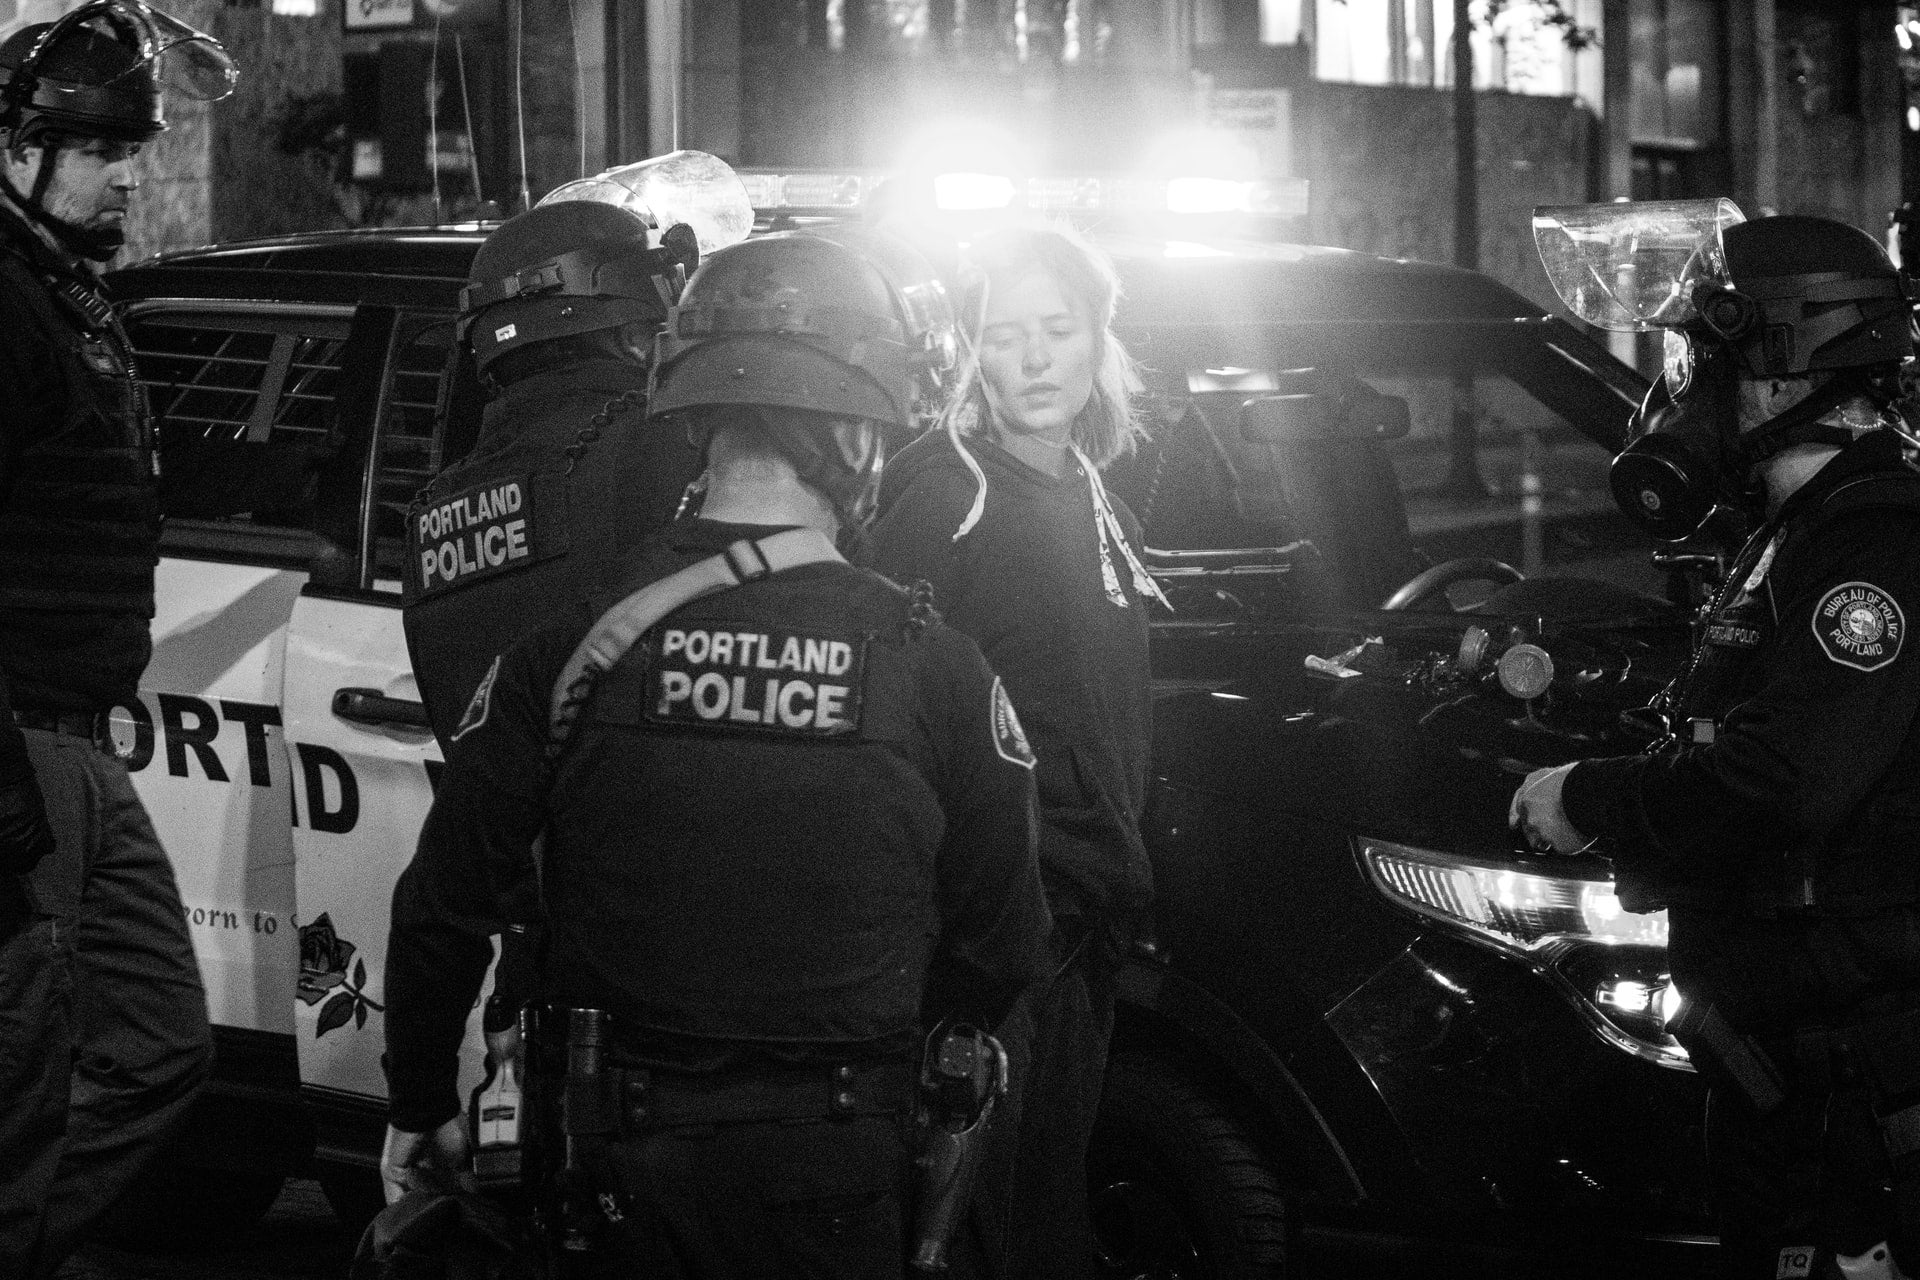 A protester in Portland getting arrested by the city's police department